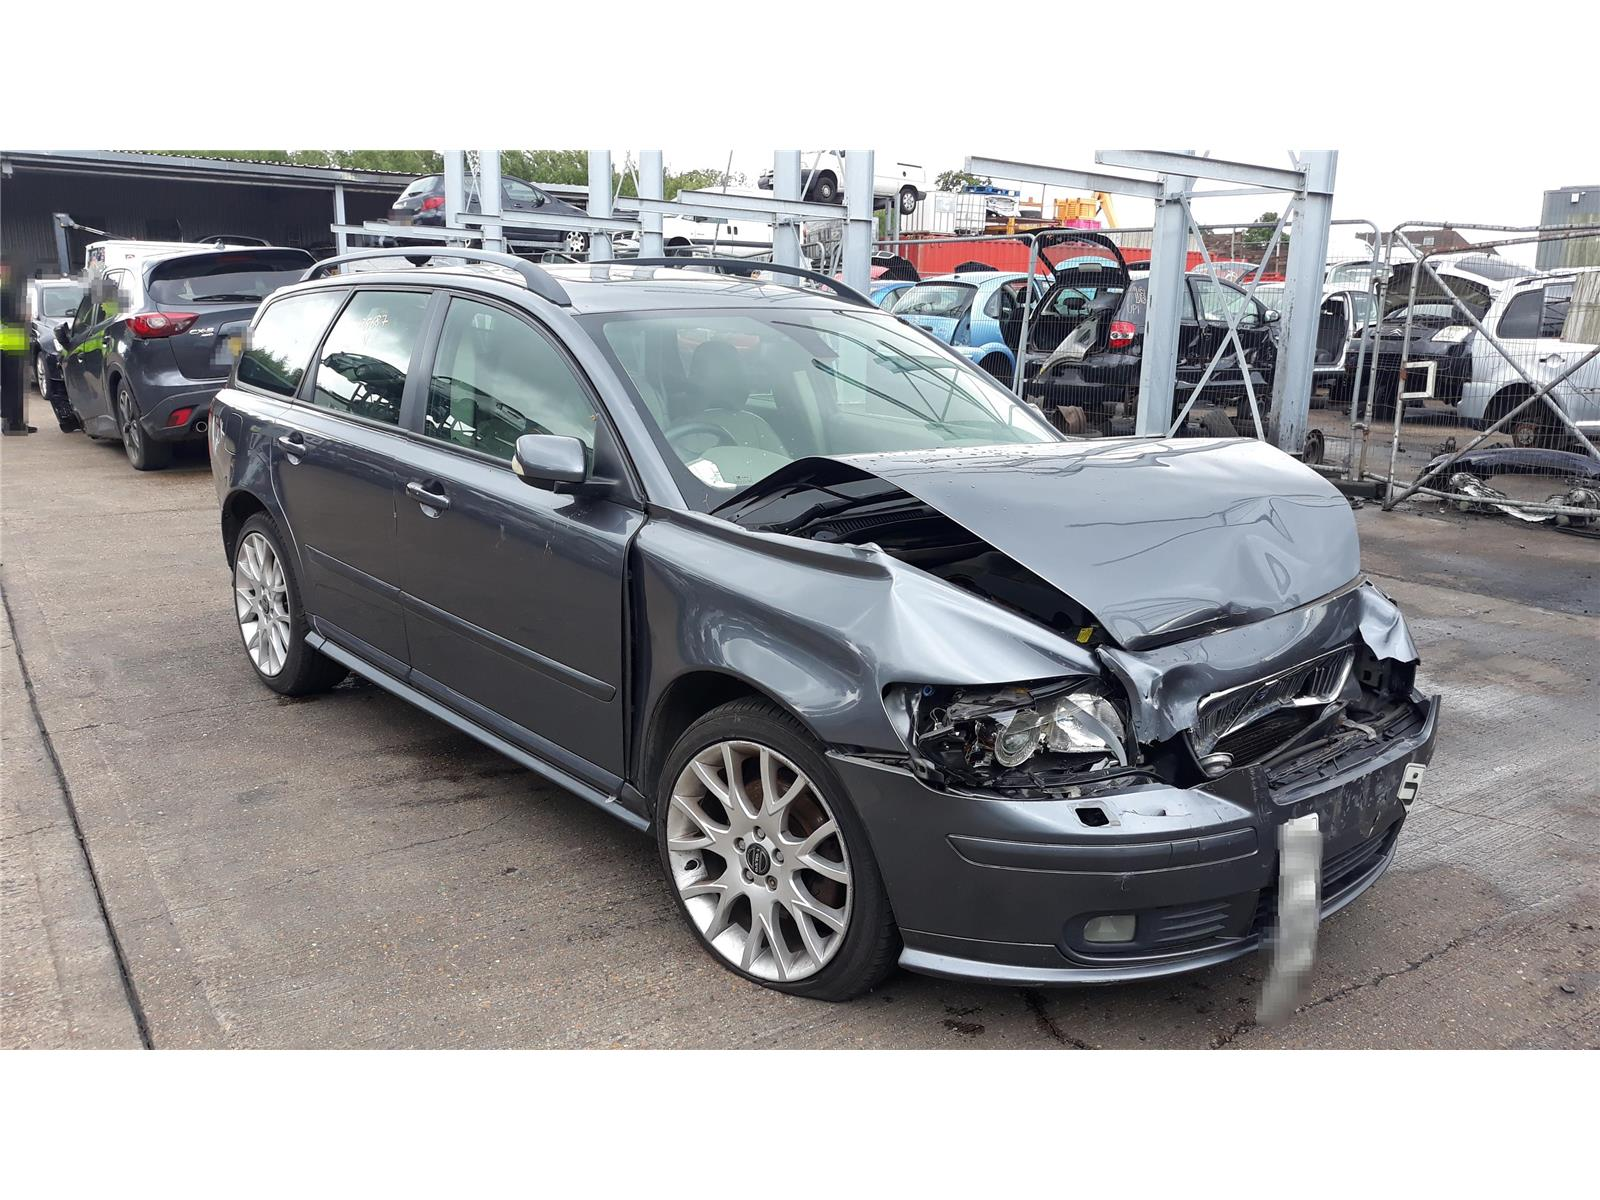 Volvo V50 2004 To 2010 SE Sport D 5 Door Estate / scrap